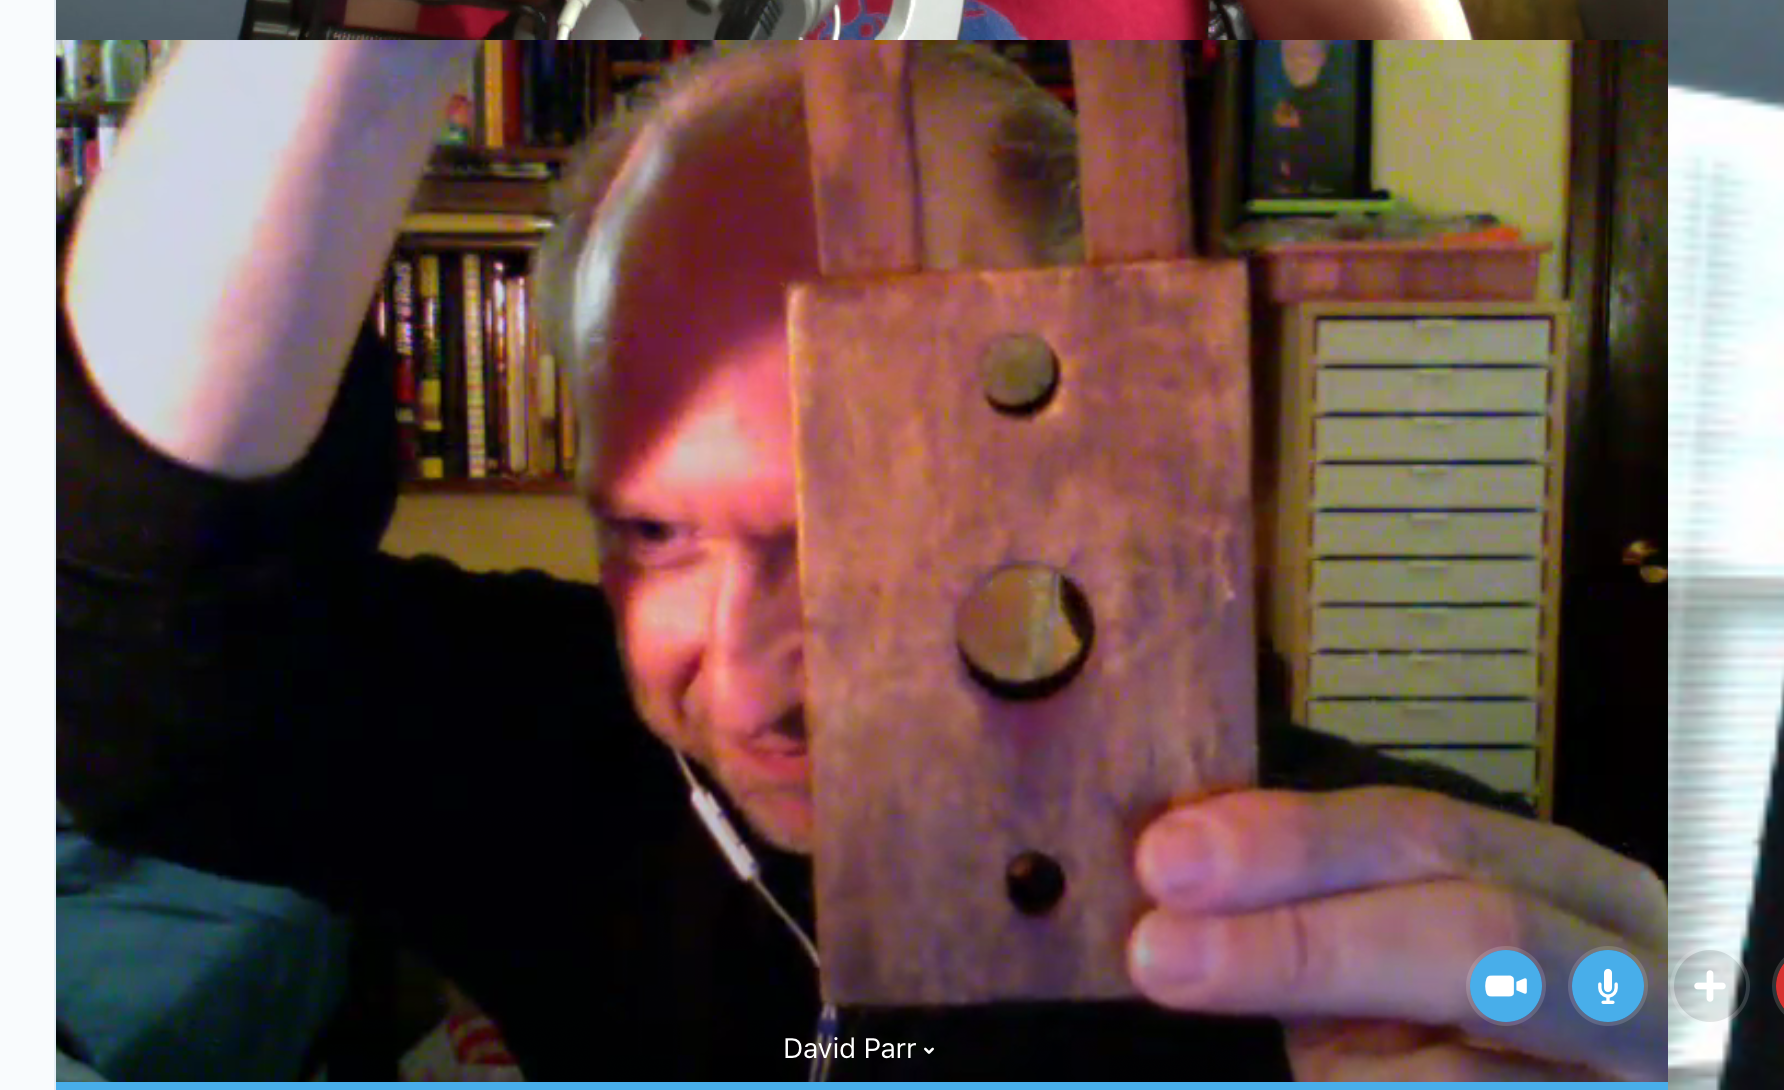 David Parr and the Miniature Guillotine